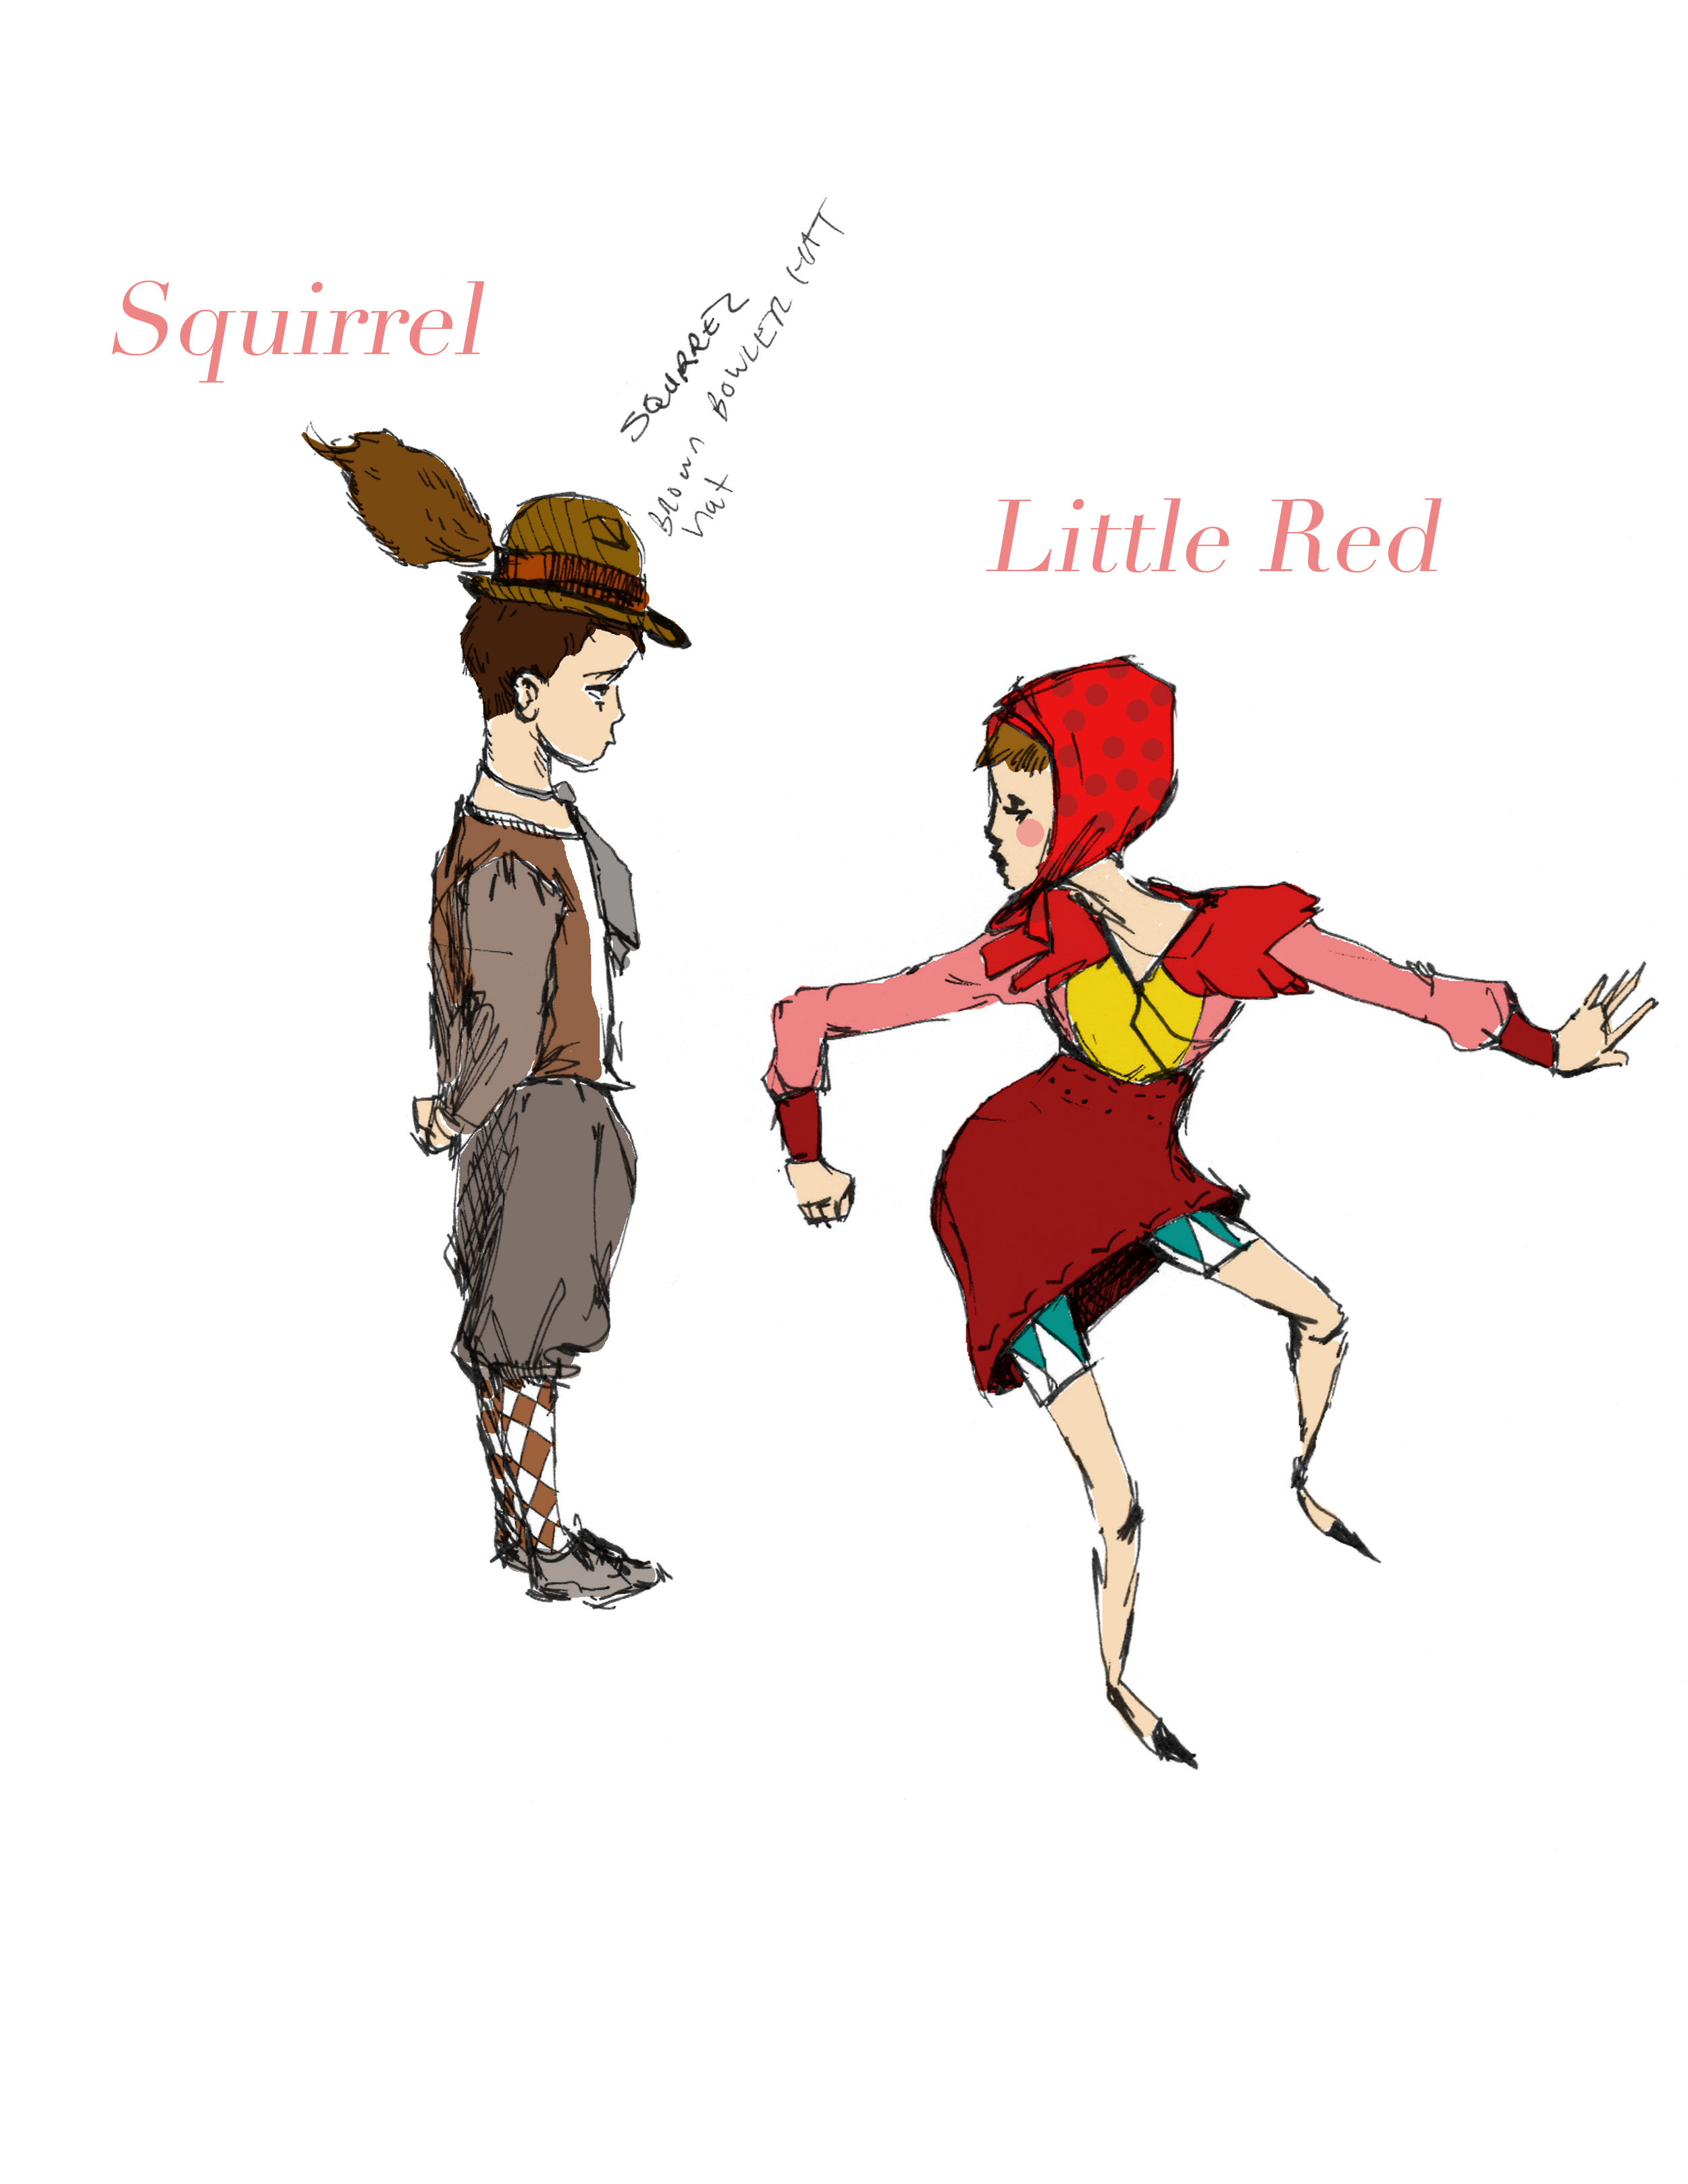 Squirrel and Little Red.jpg